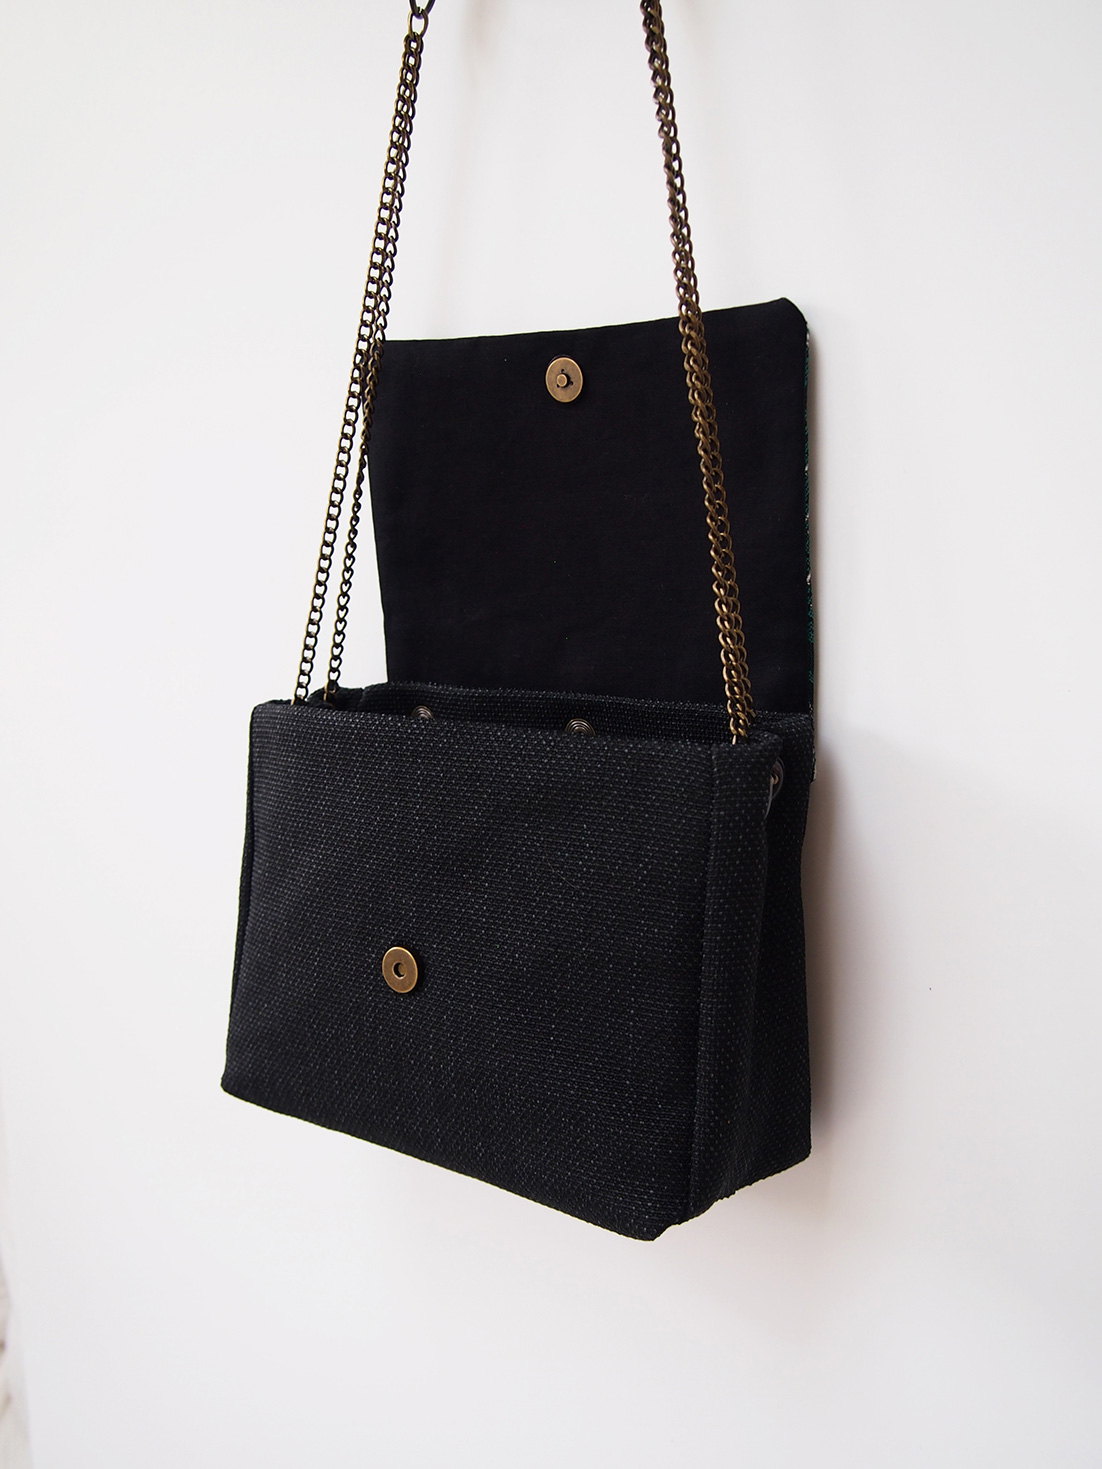 Sac June anthracite rabat au choix interchangeable